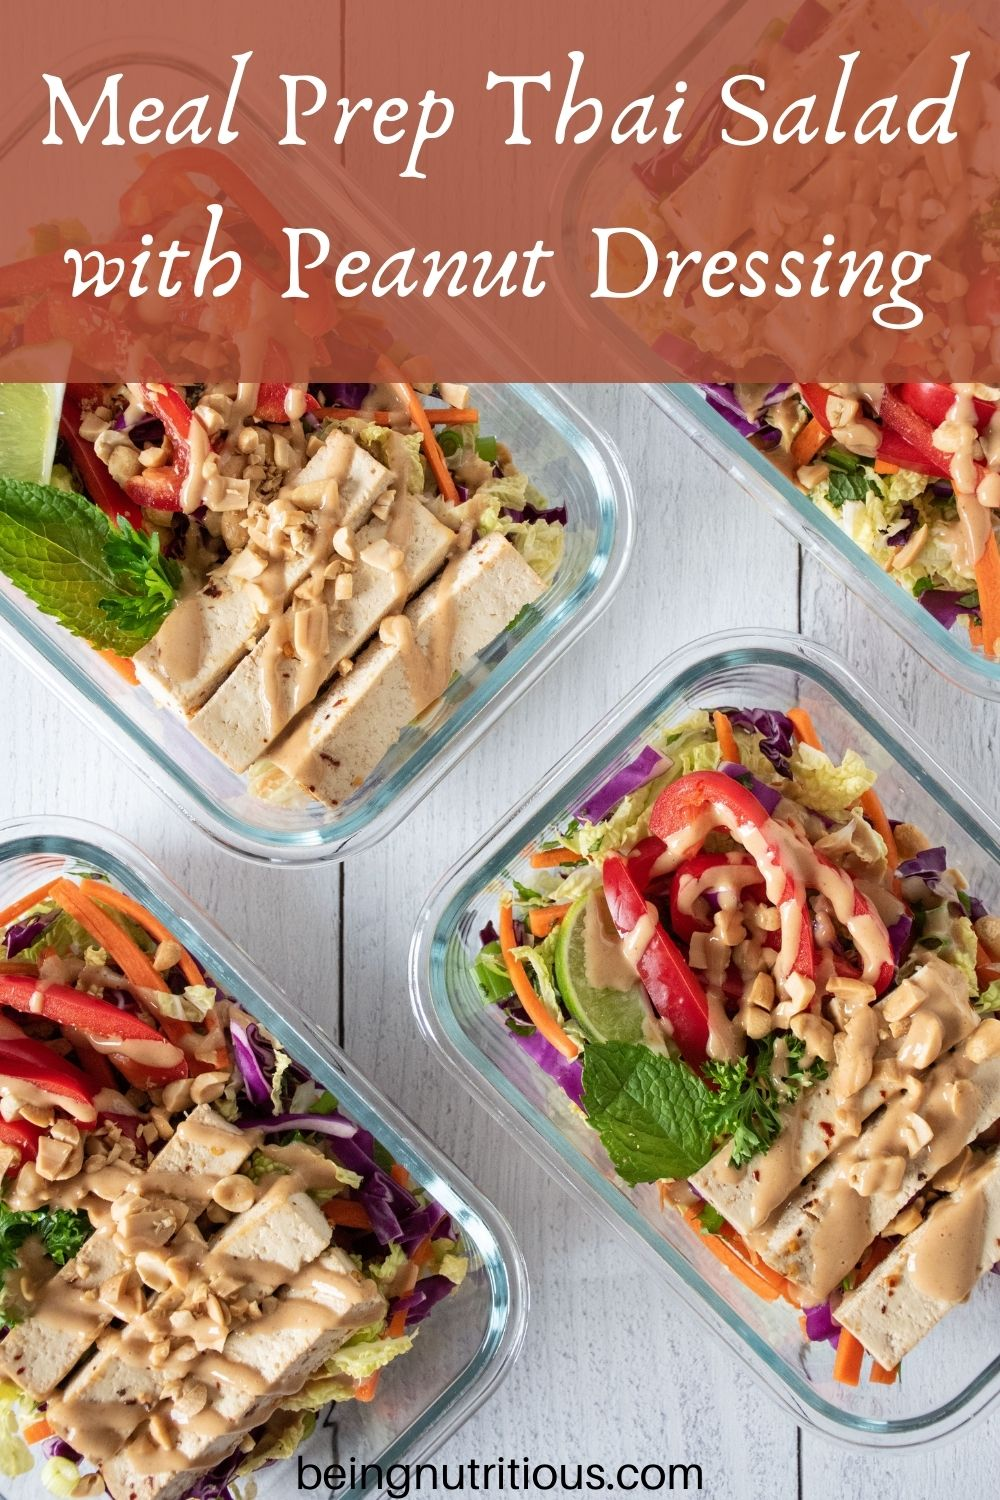 Overhead picture of Thai salad in meal prep containers. Text overlay: Meal Prep Thai Salad with Peanut Dressing.